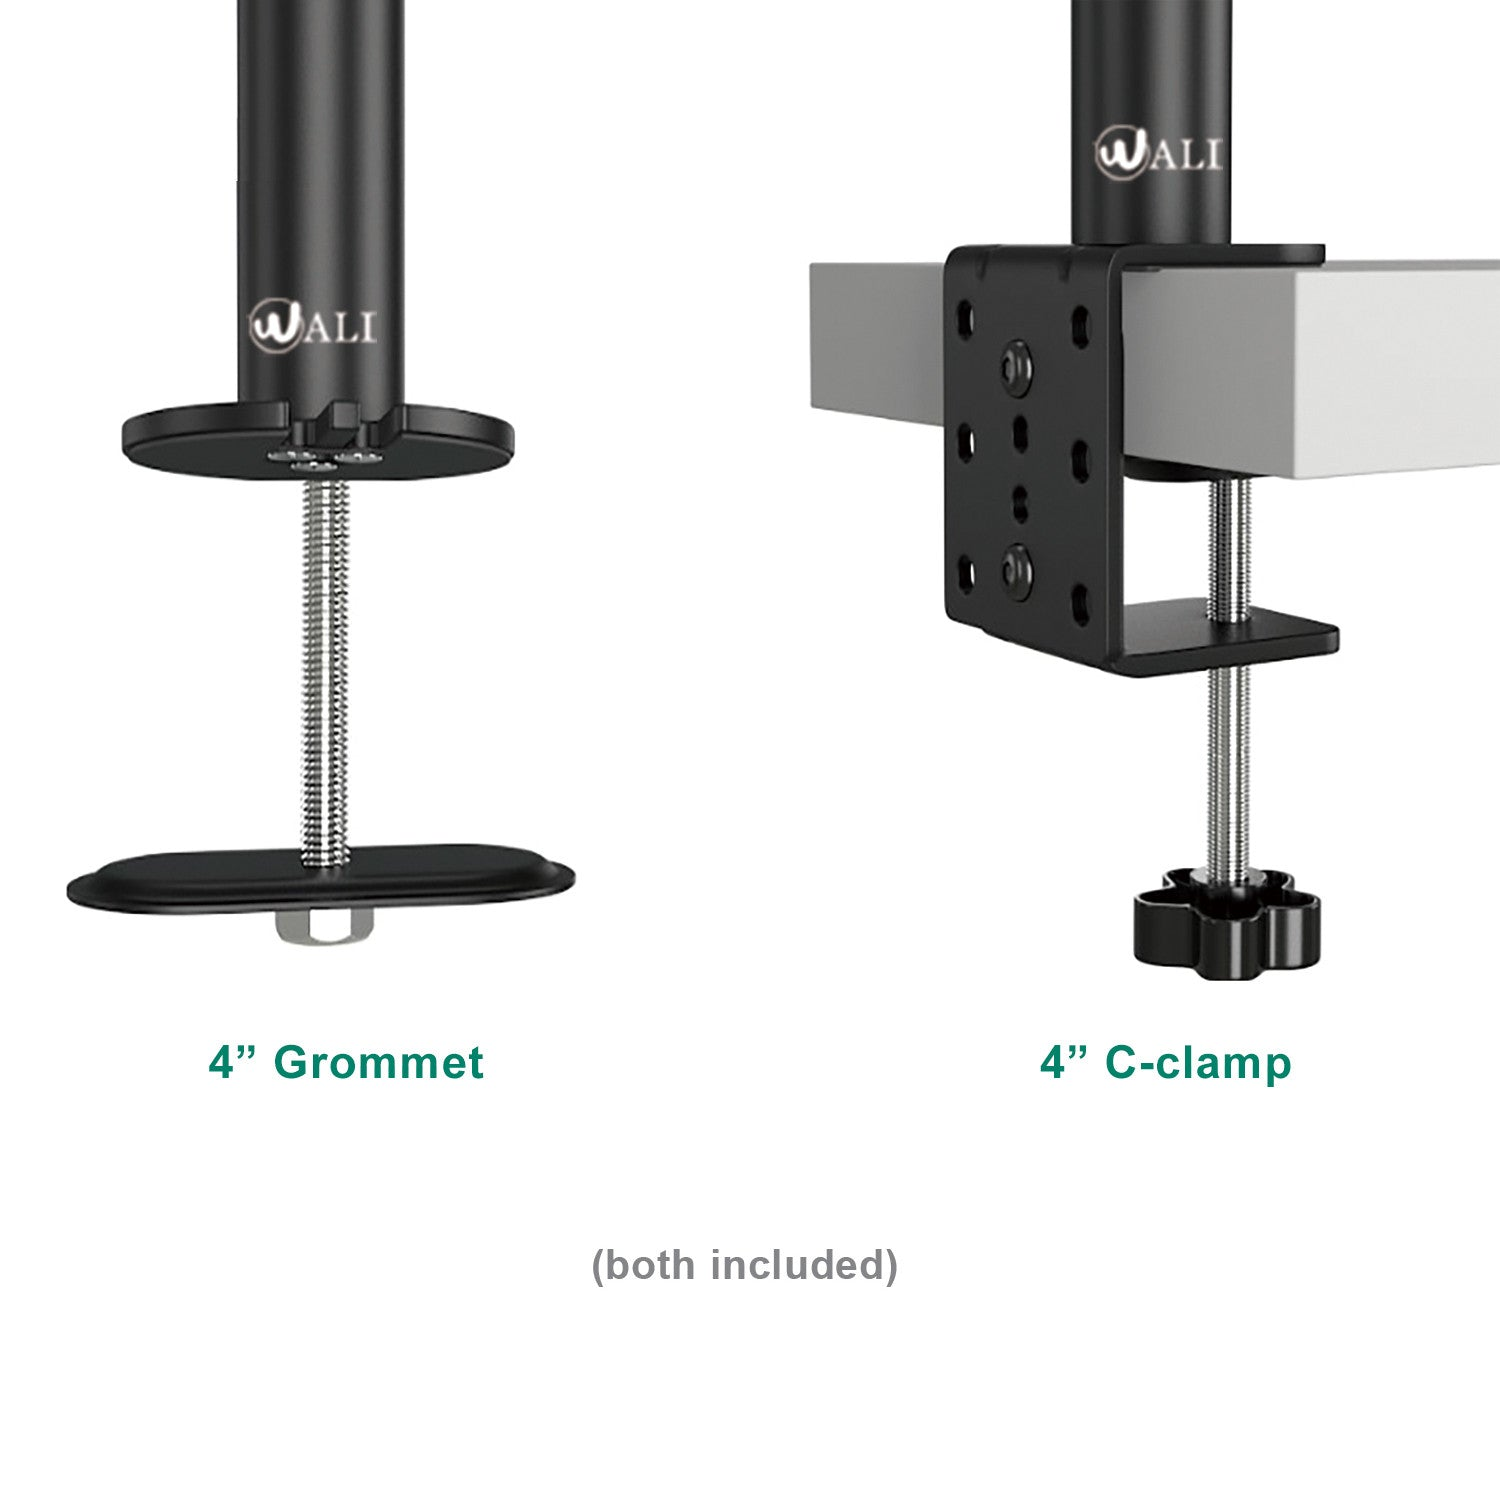 Dual Lcd Monitor Extra Tall Desk Stand Fits Two Screens Up